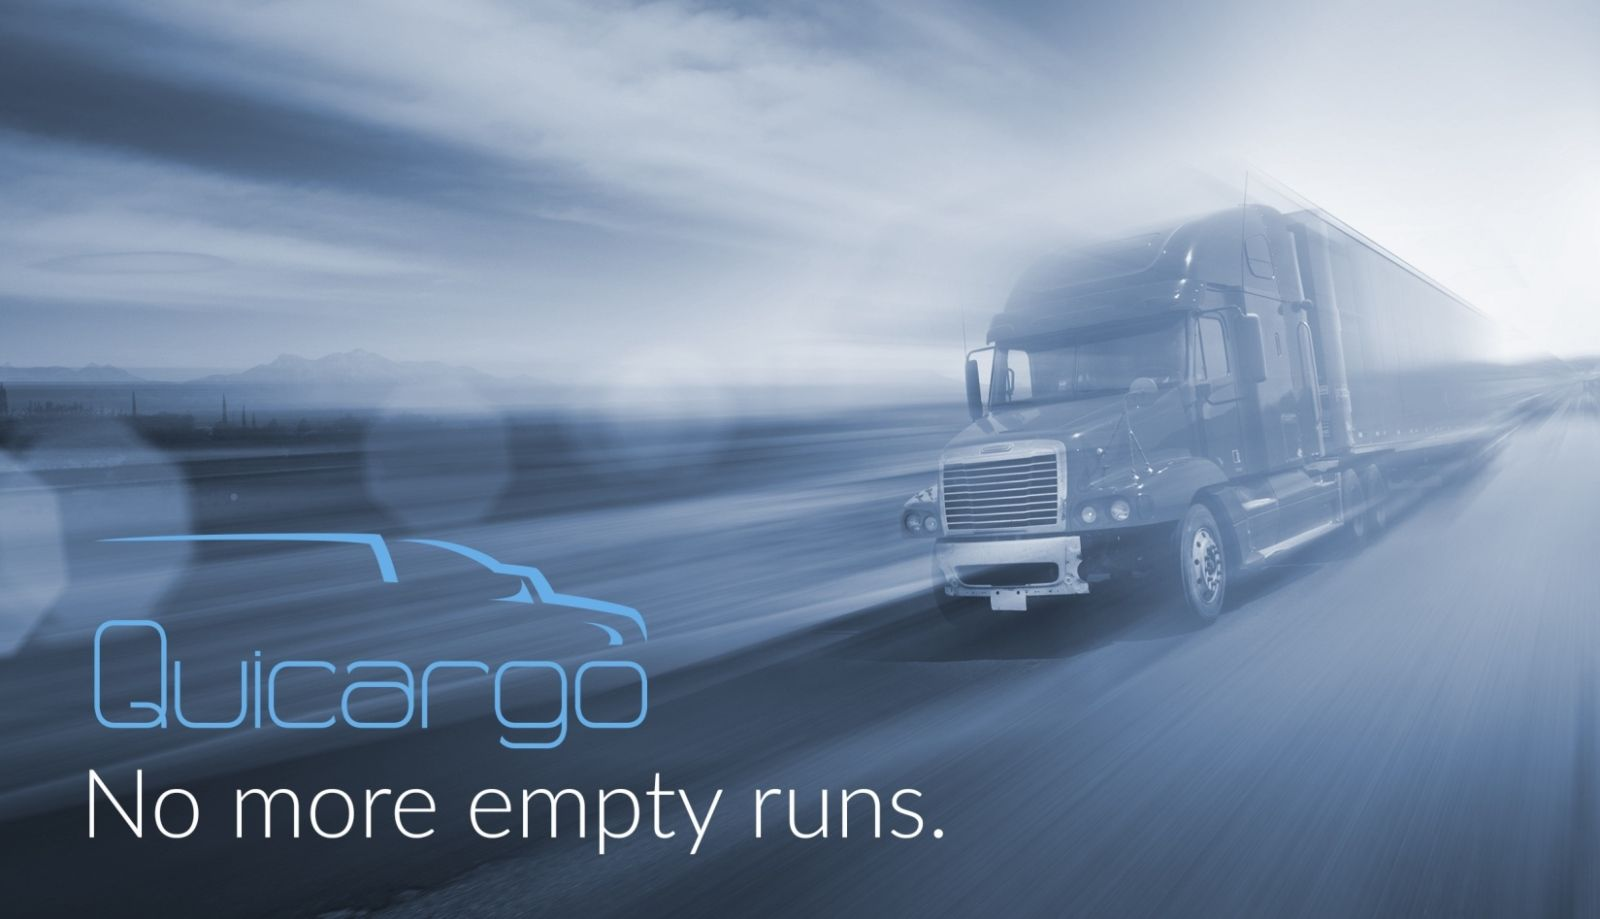 Quicargo's online platform helps carriers sell empty cargo spaces to shippers needing to transport goods in their area. Image: courtesy